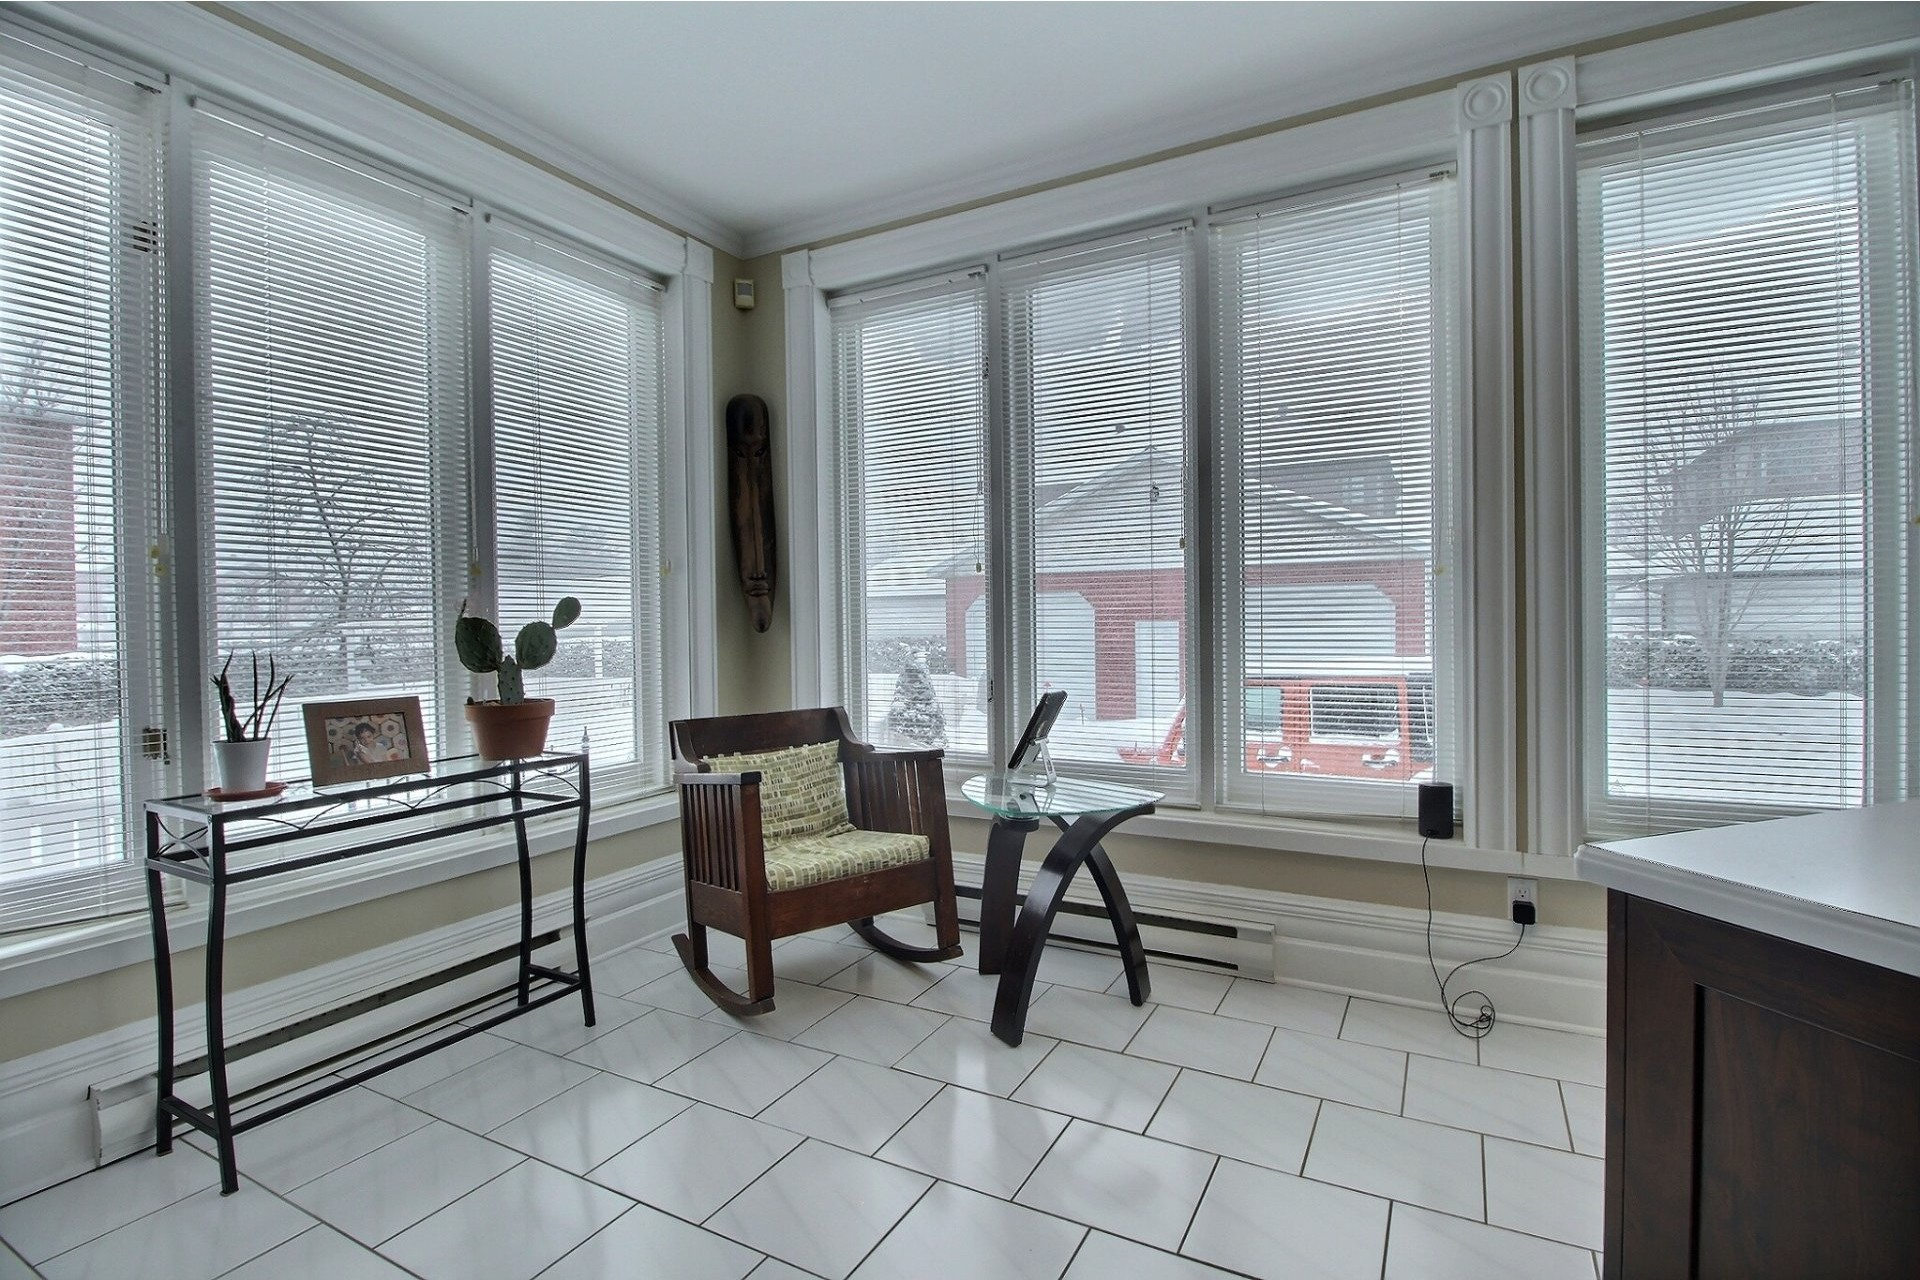 image 12 - House For sale Joliette - 8 rooms